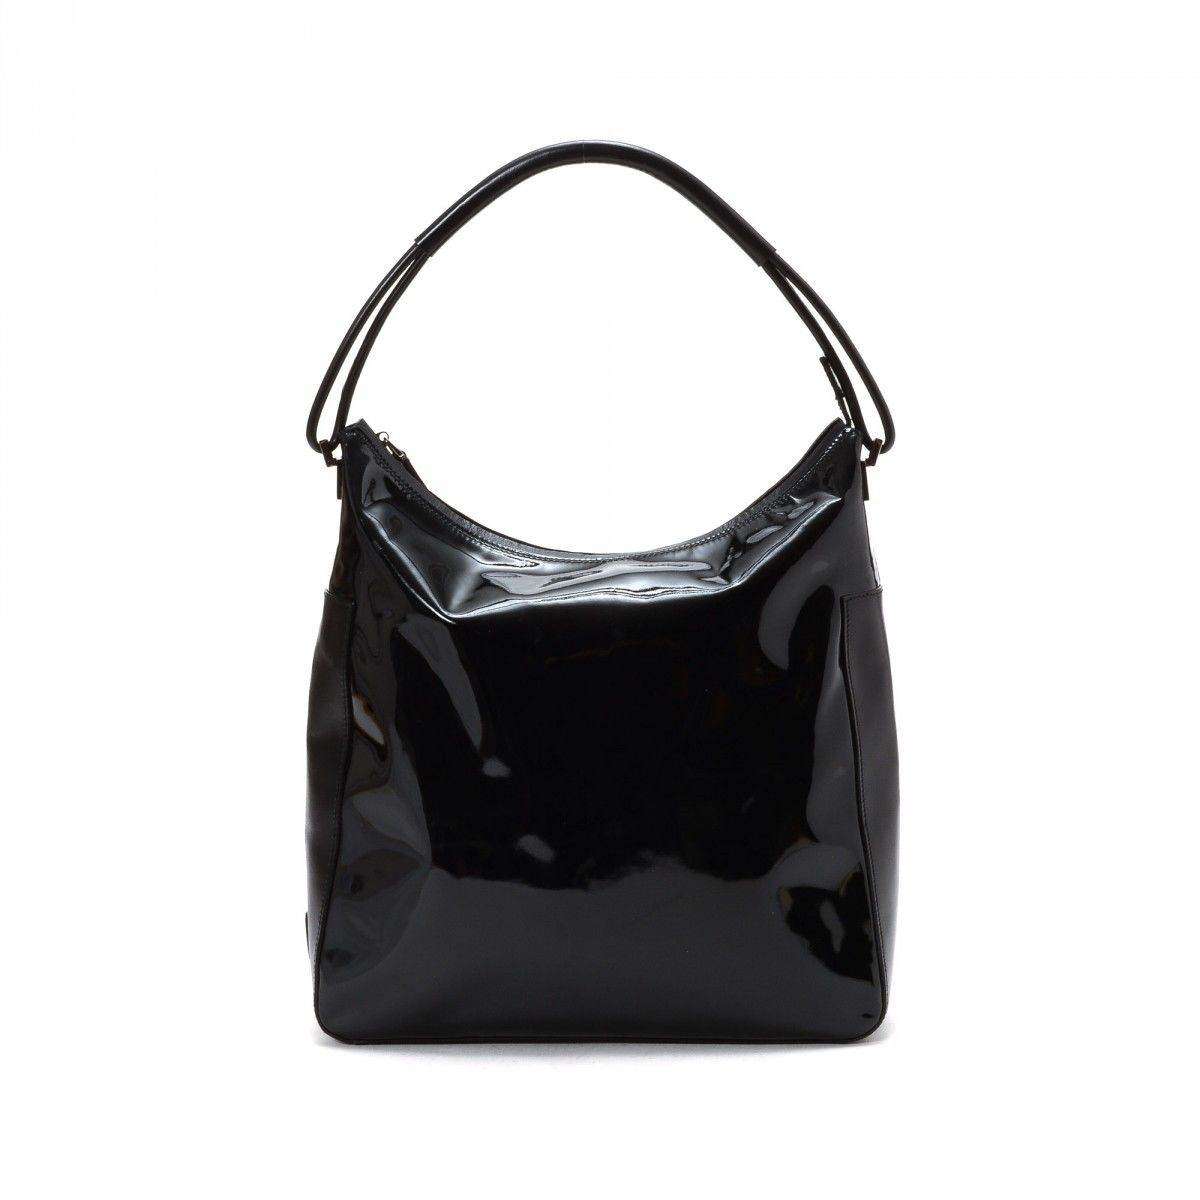 e0f31bc41 Gucci Black Patent Leather Hysteria Large Top Handle Bag Yoogi S Duffle Bags  Gucci Com ...